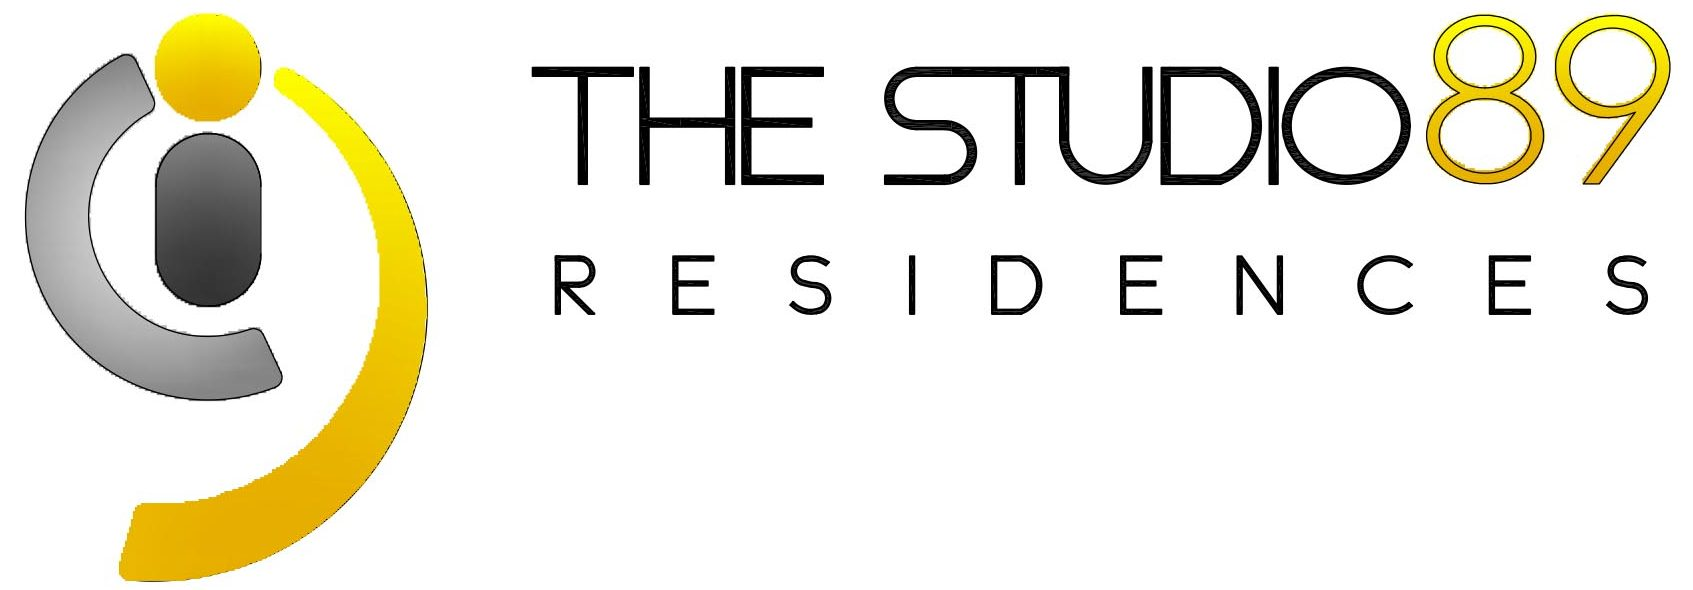 The Studio 89 Residences